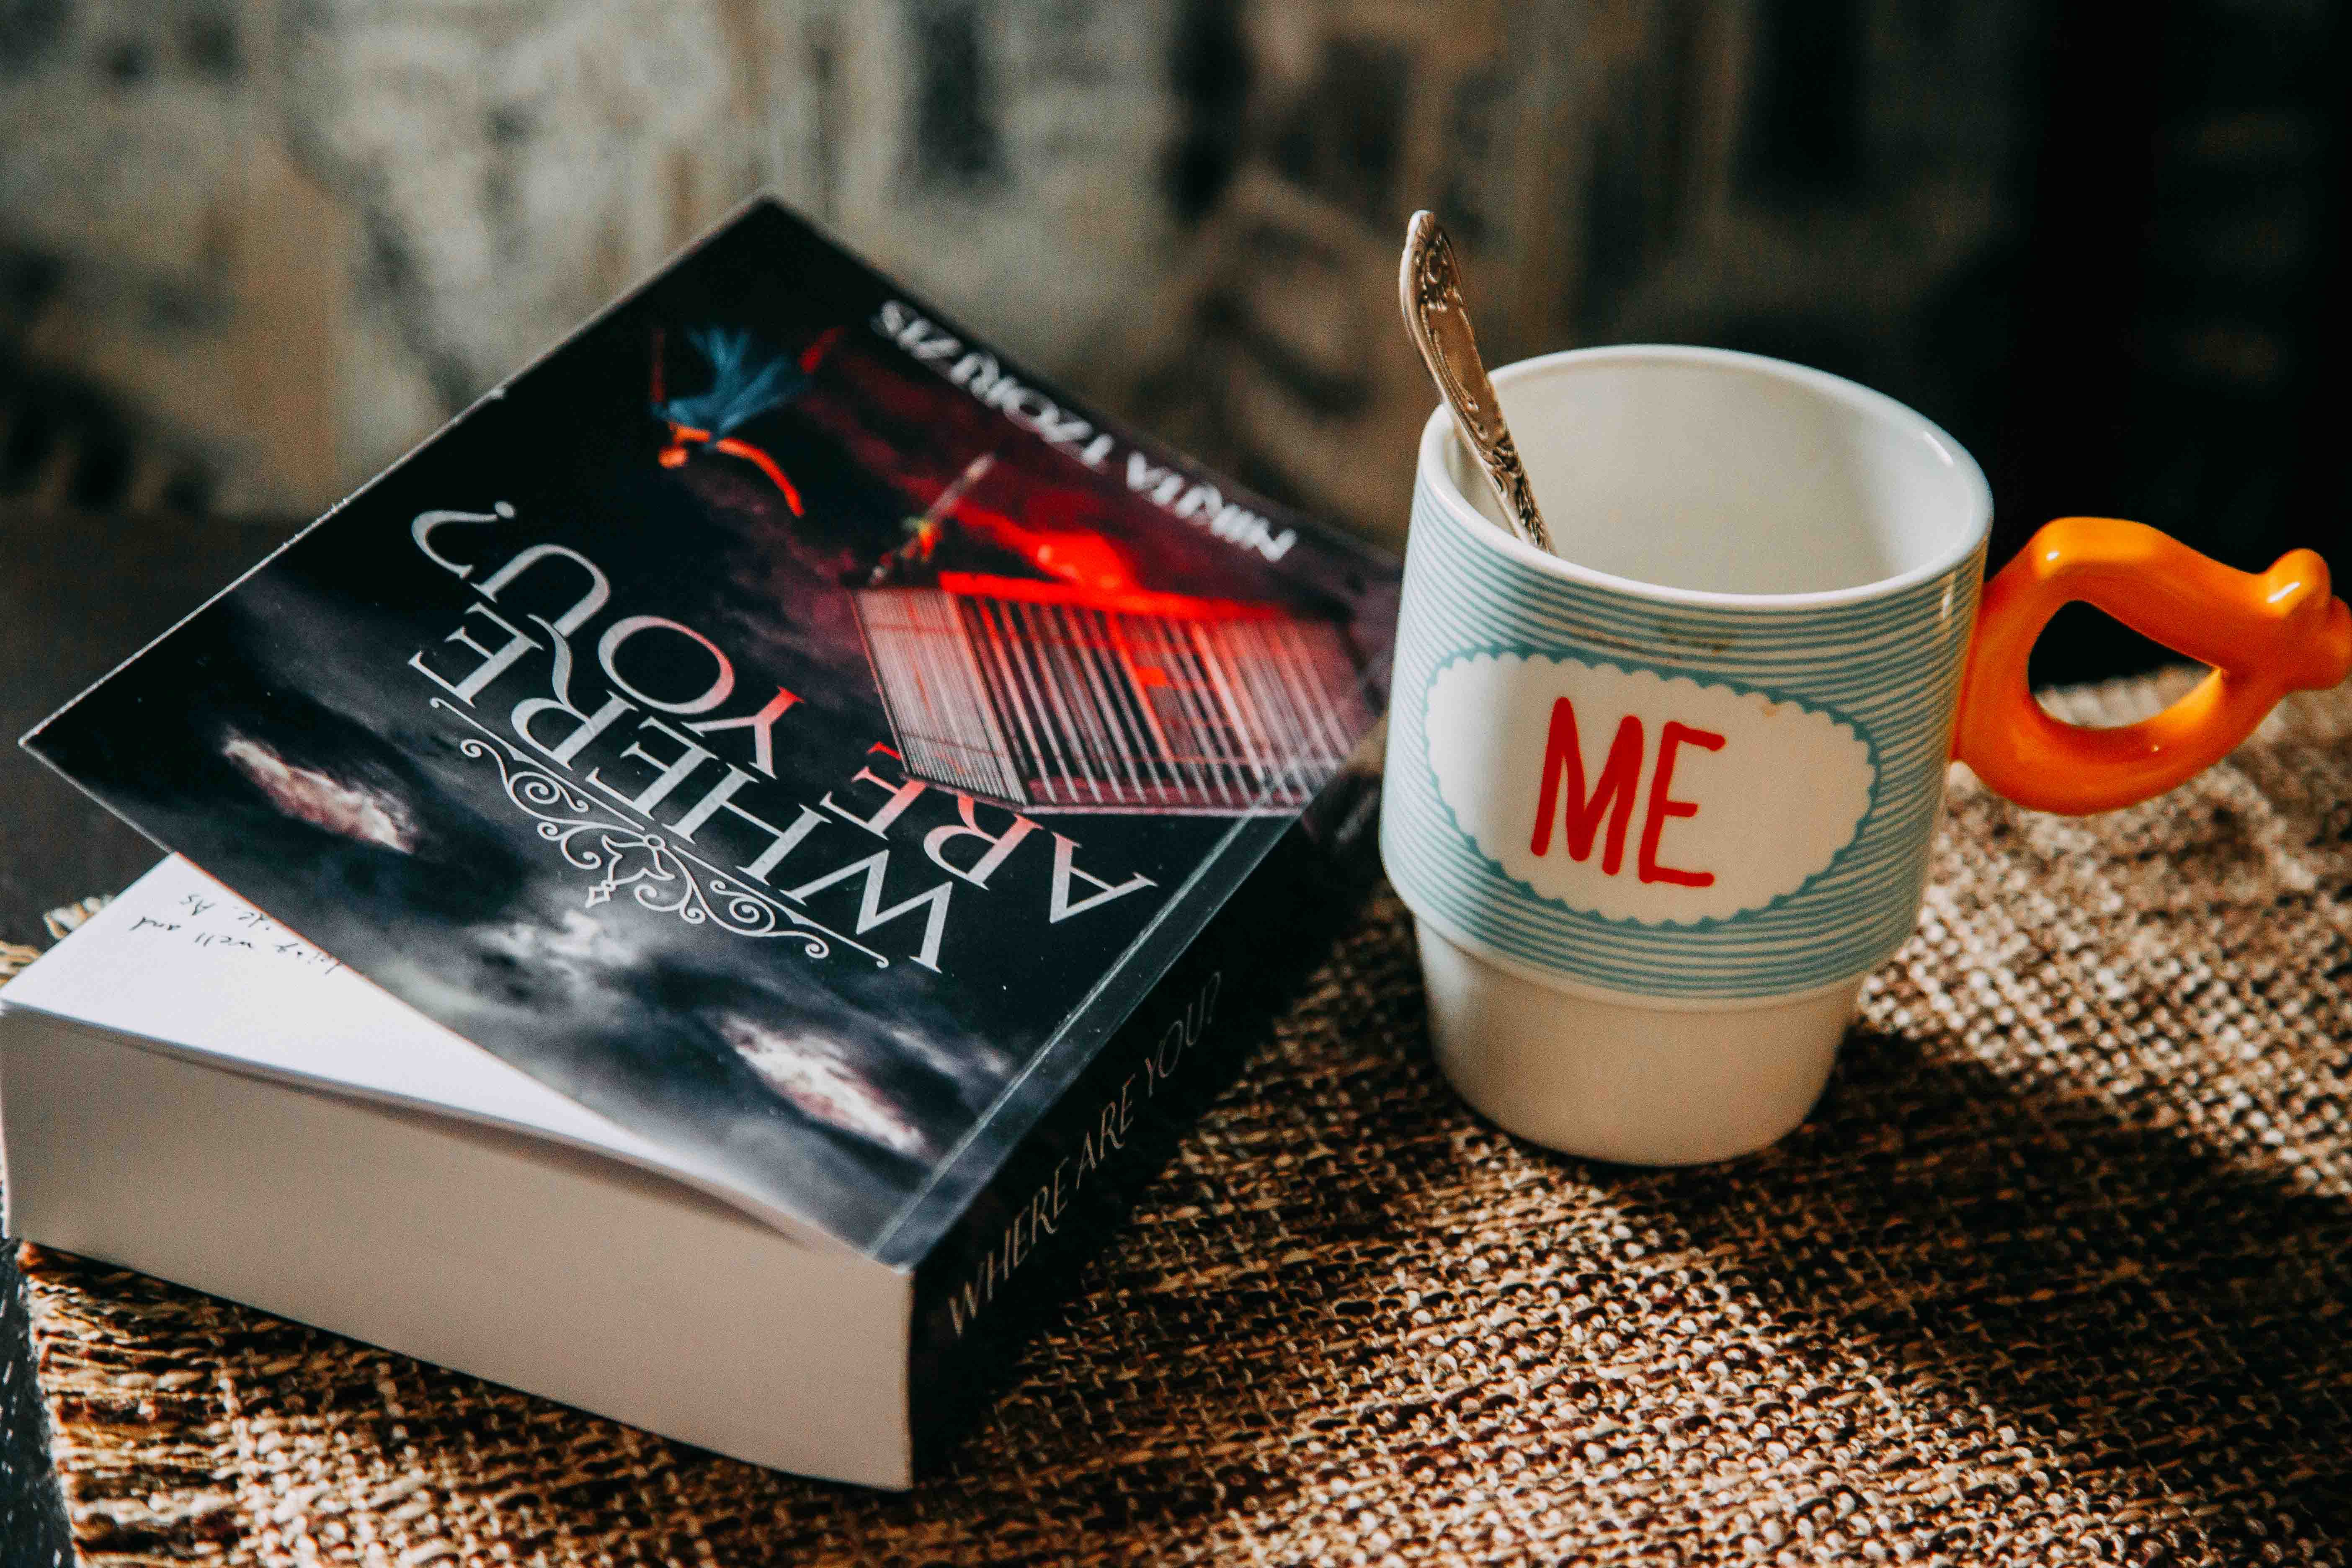 Where Are You? Book Beside Me Printed Cup